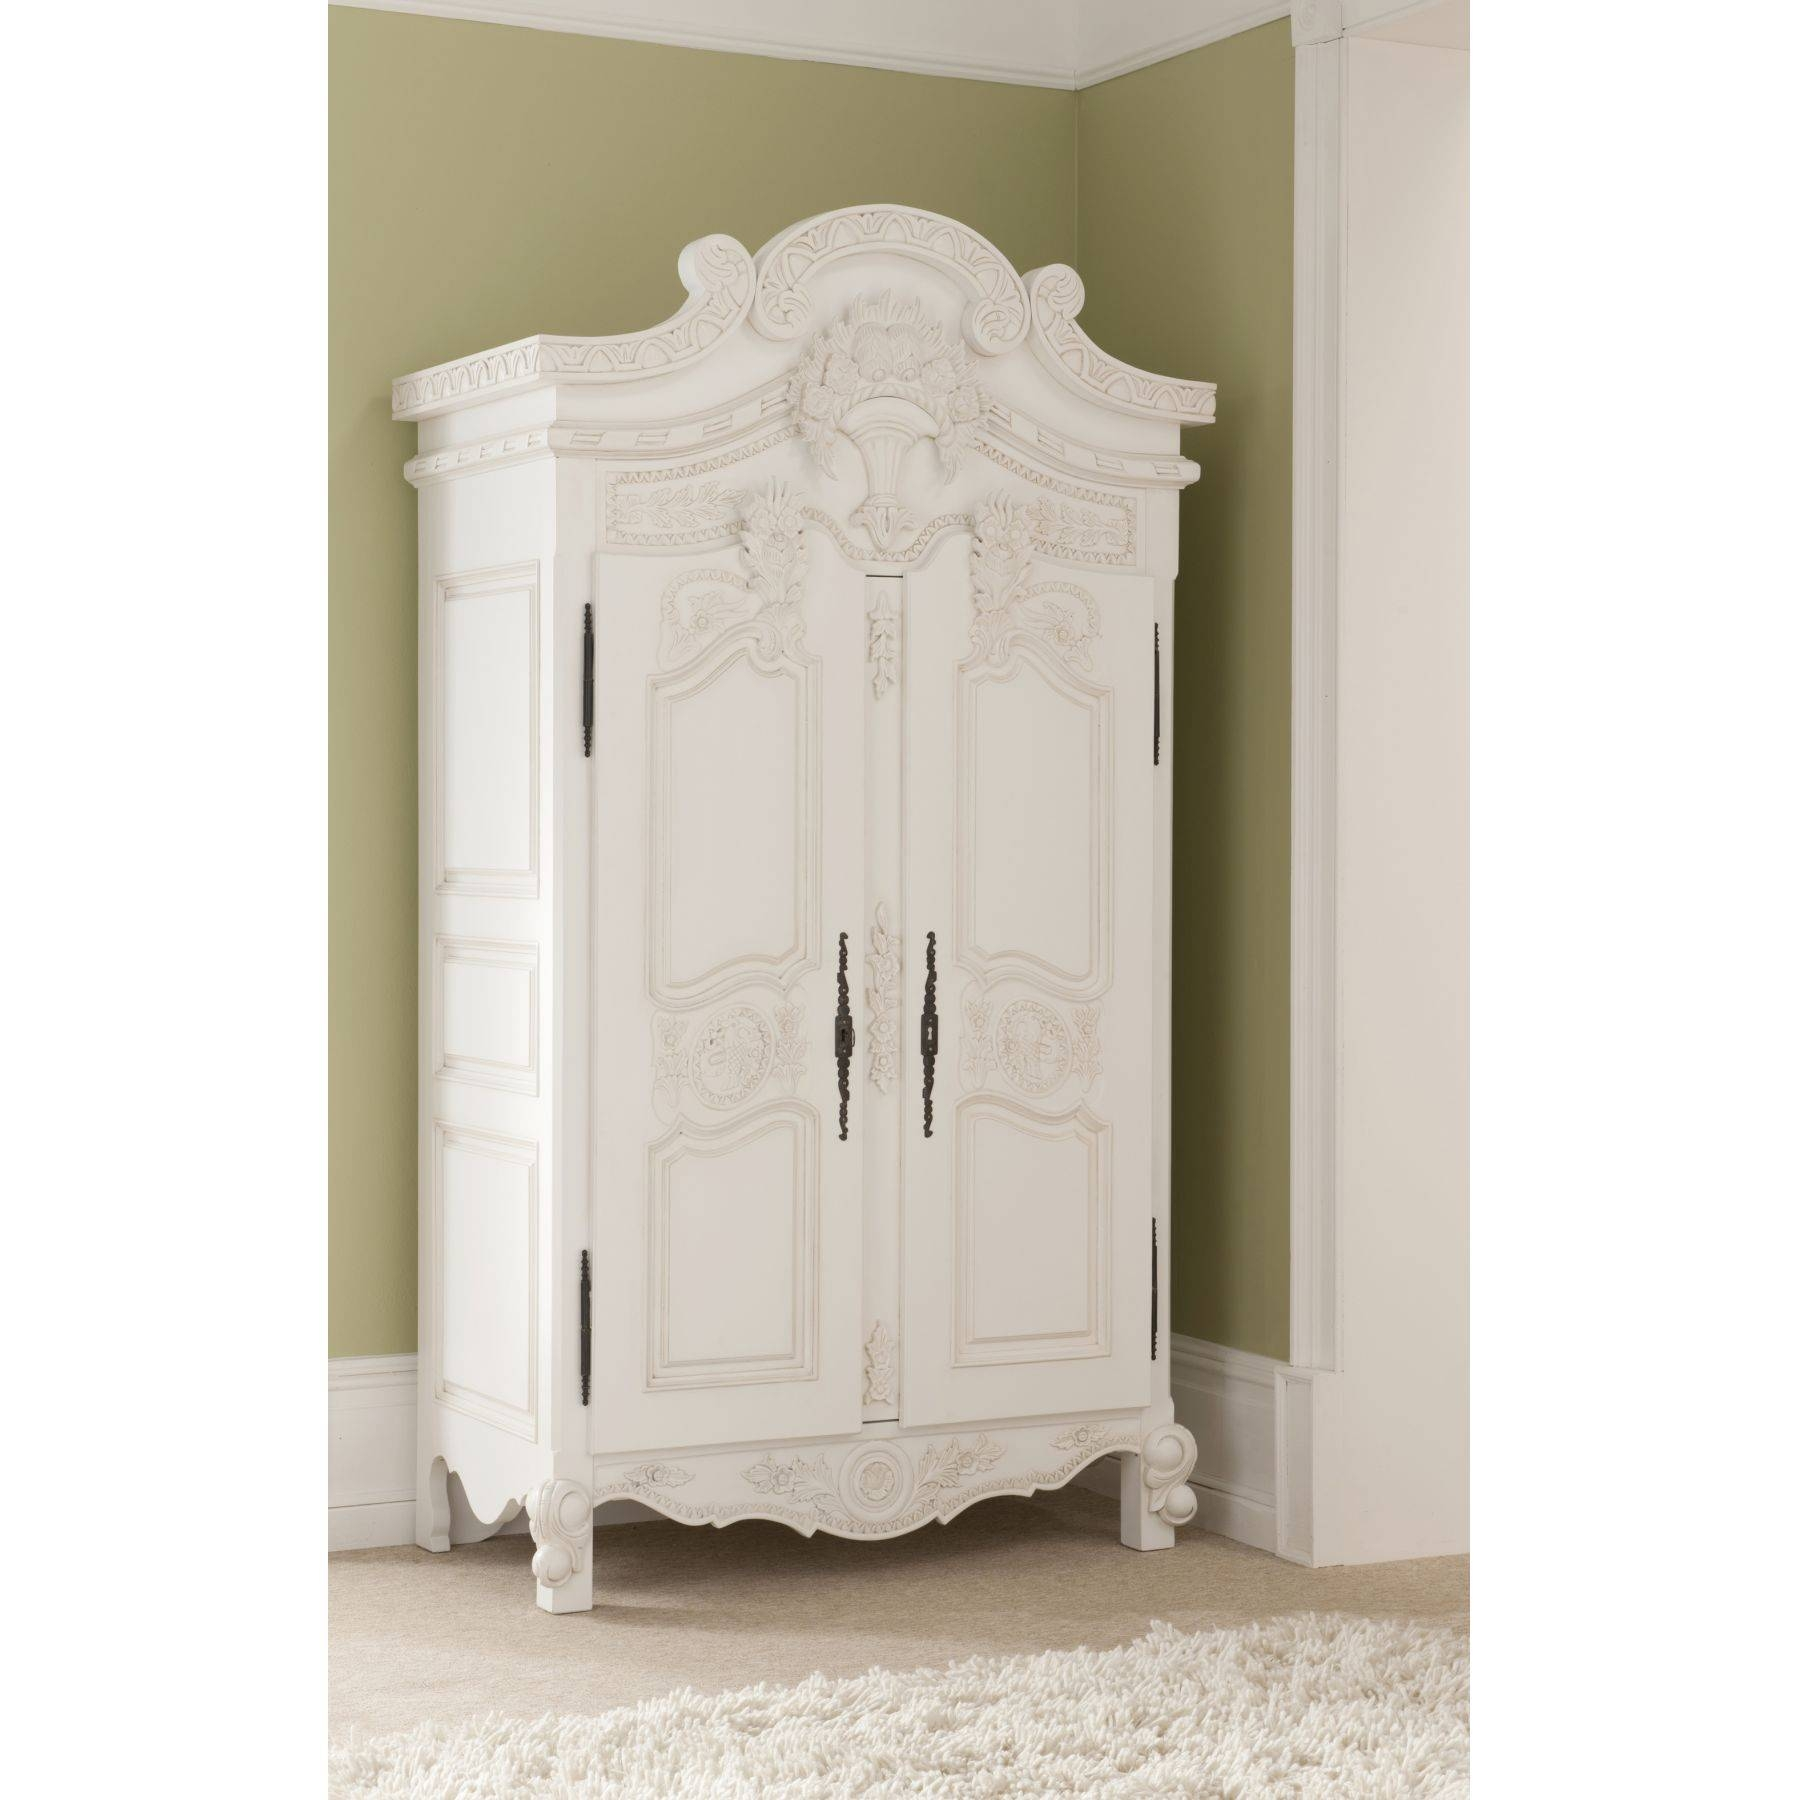 Rococo Antique French Wardrobe A Stunning Addition To Our Shabby pertaining to French Style White Wardrobes (Image 12 of 15)